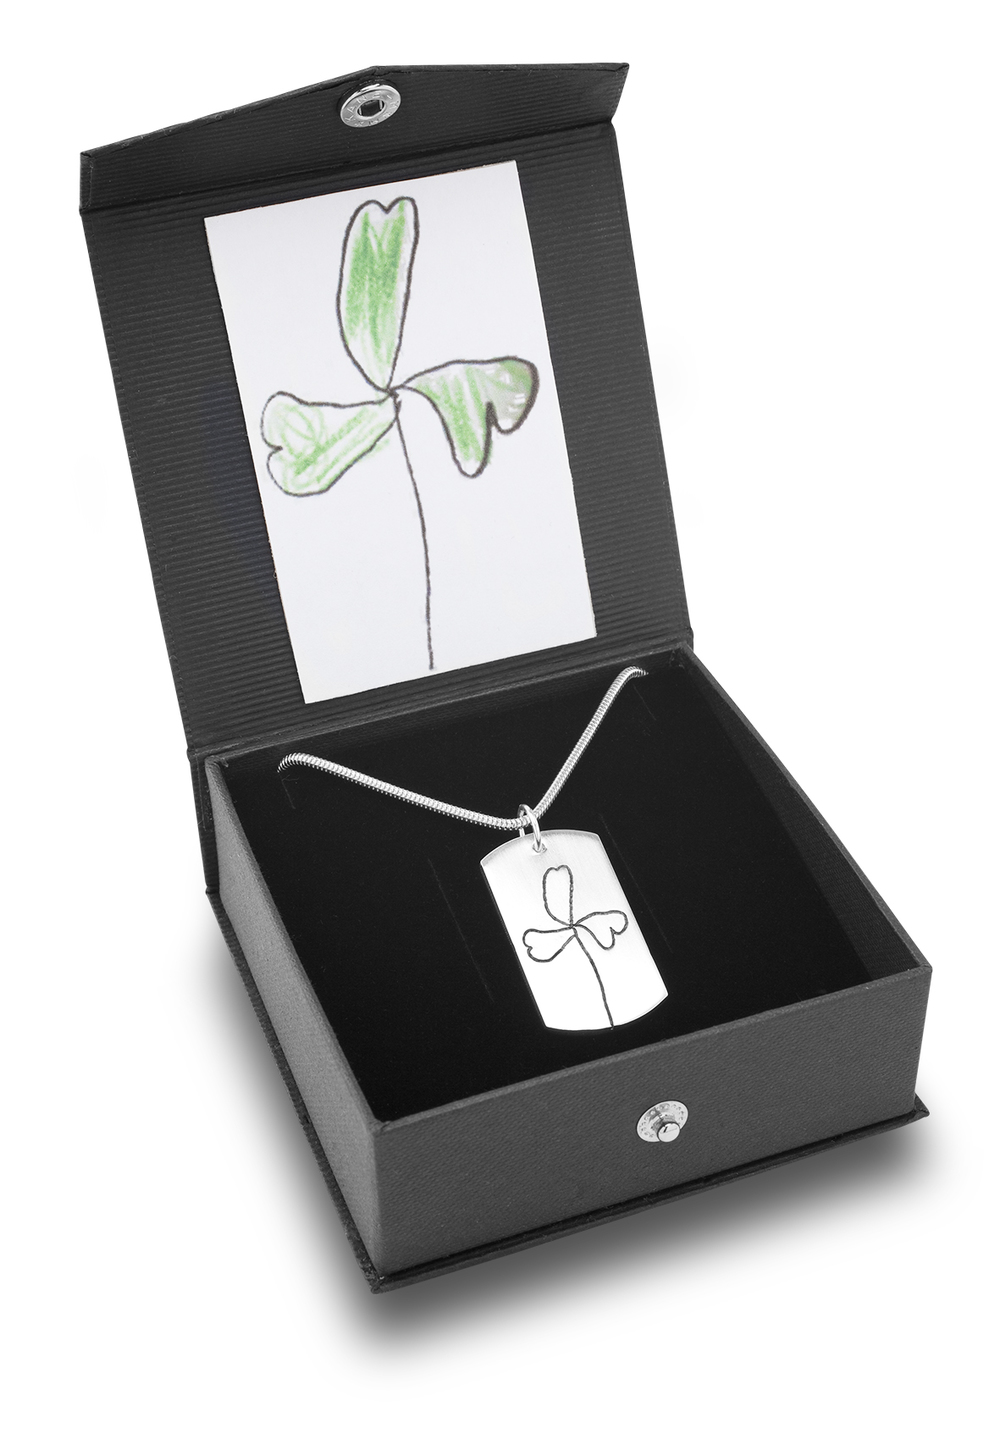 Handmade silver jewellery presented in exclusive gift box